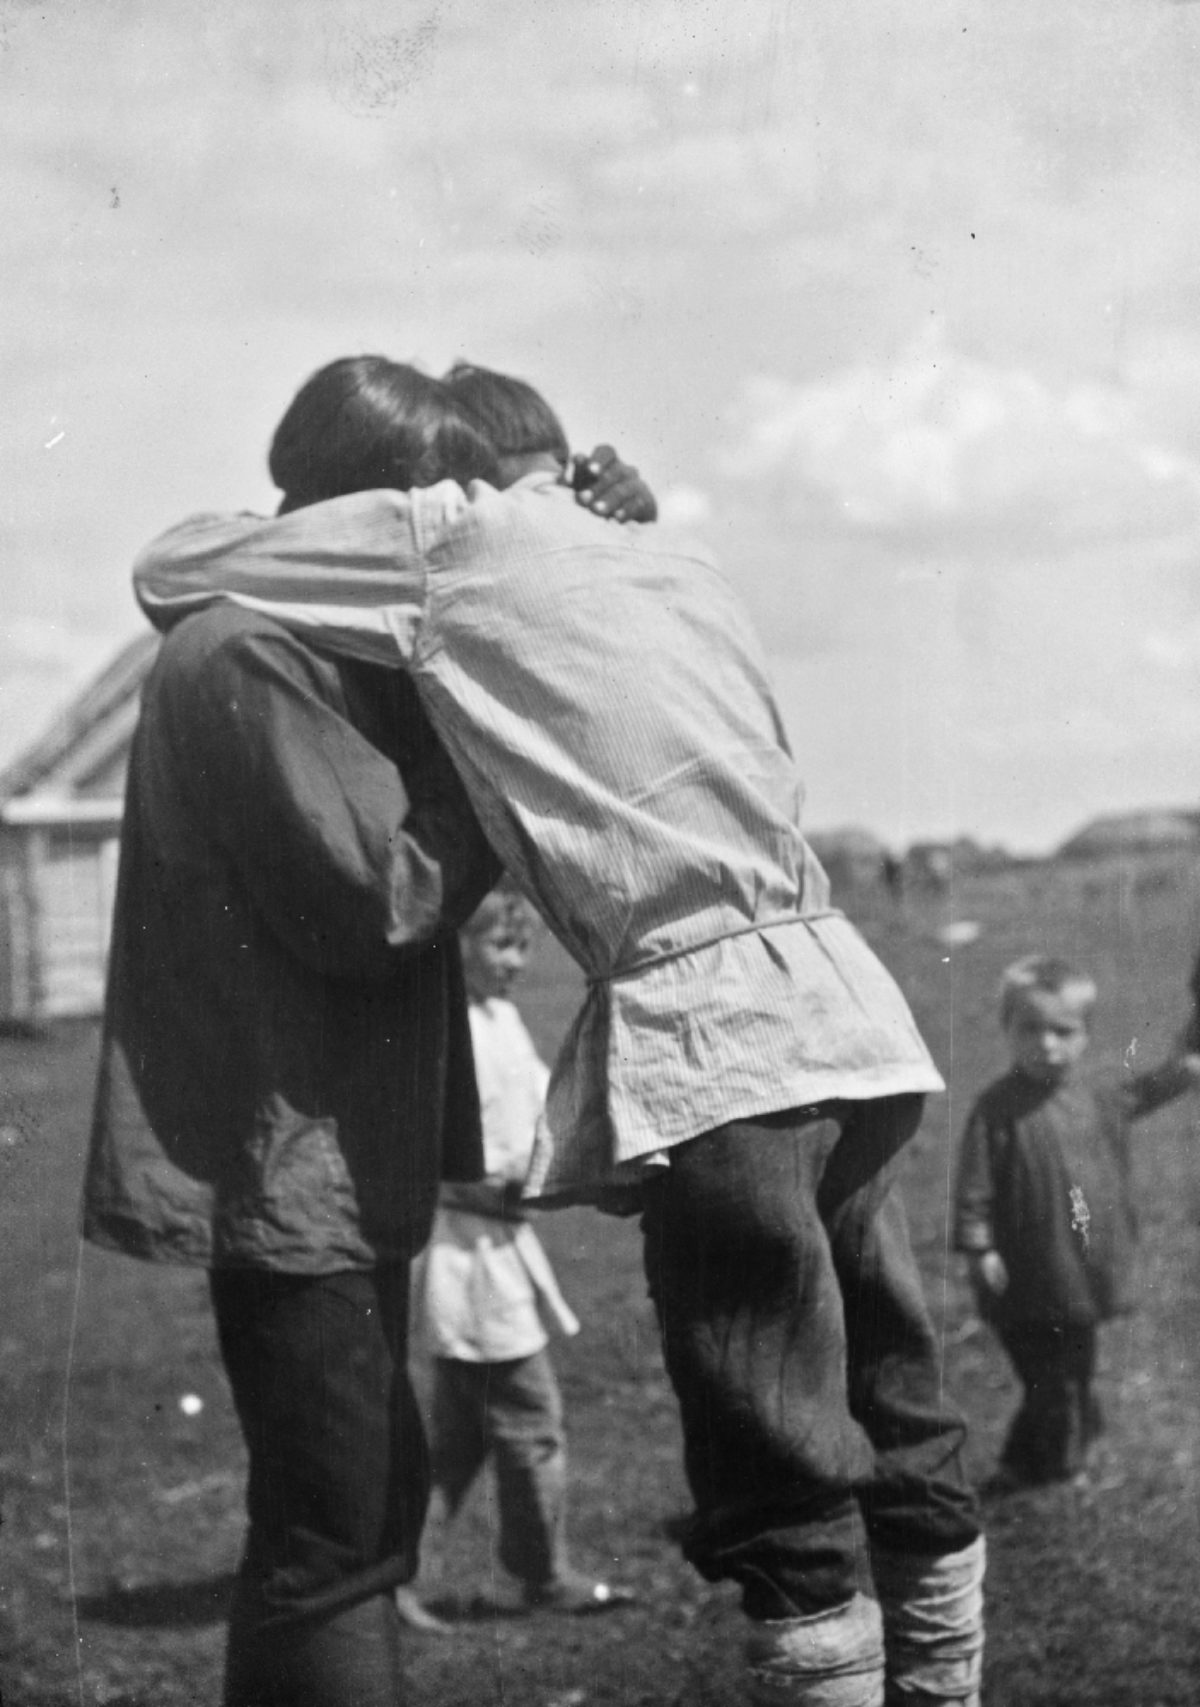 Childhood friends say goodbye before going to war in Vechkanovo, Buguruslansky District, Mordovia, 1914. Photo: A. O. Väisänen / Picture Collections of the Finnish Heritage Agency